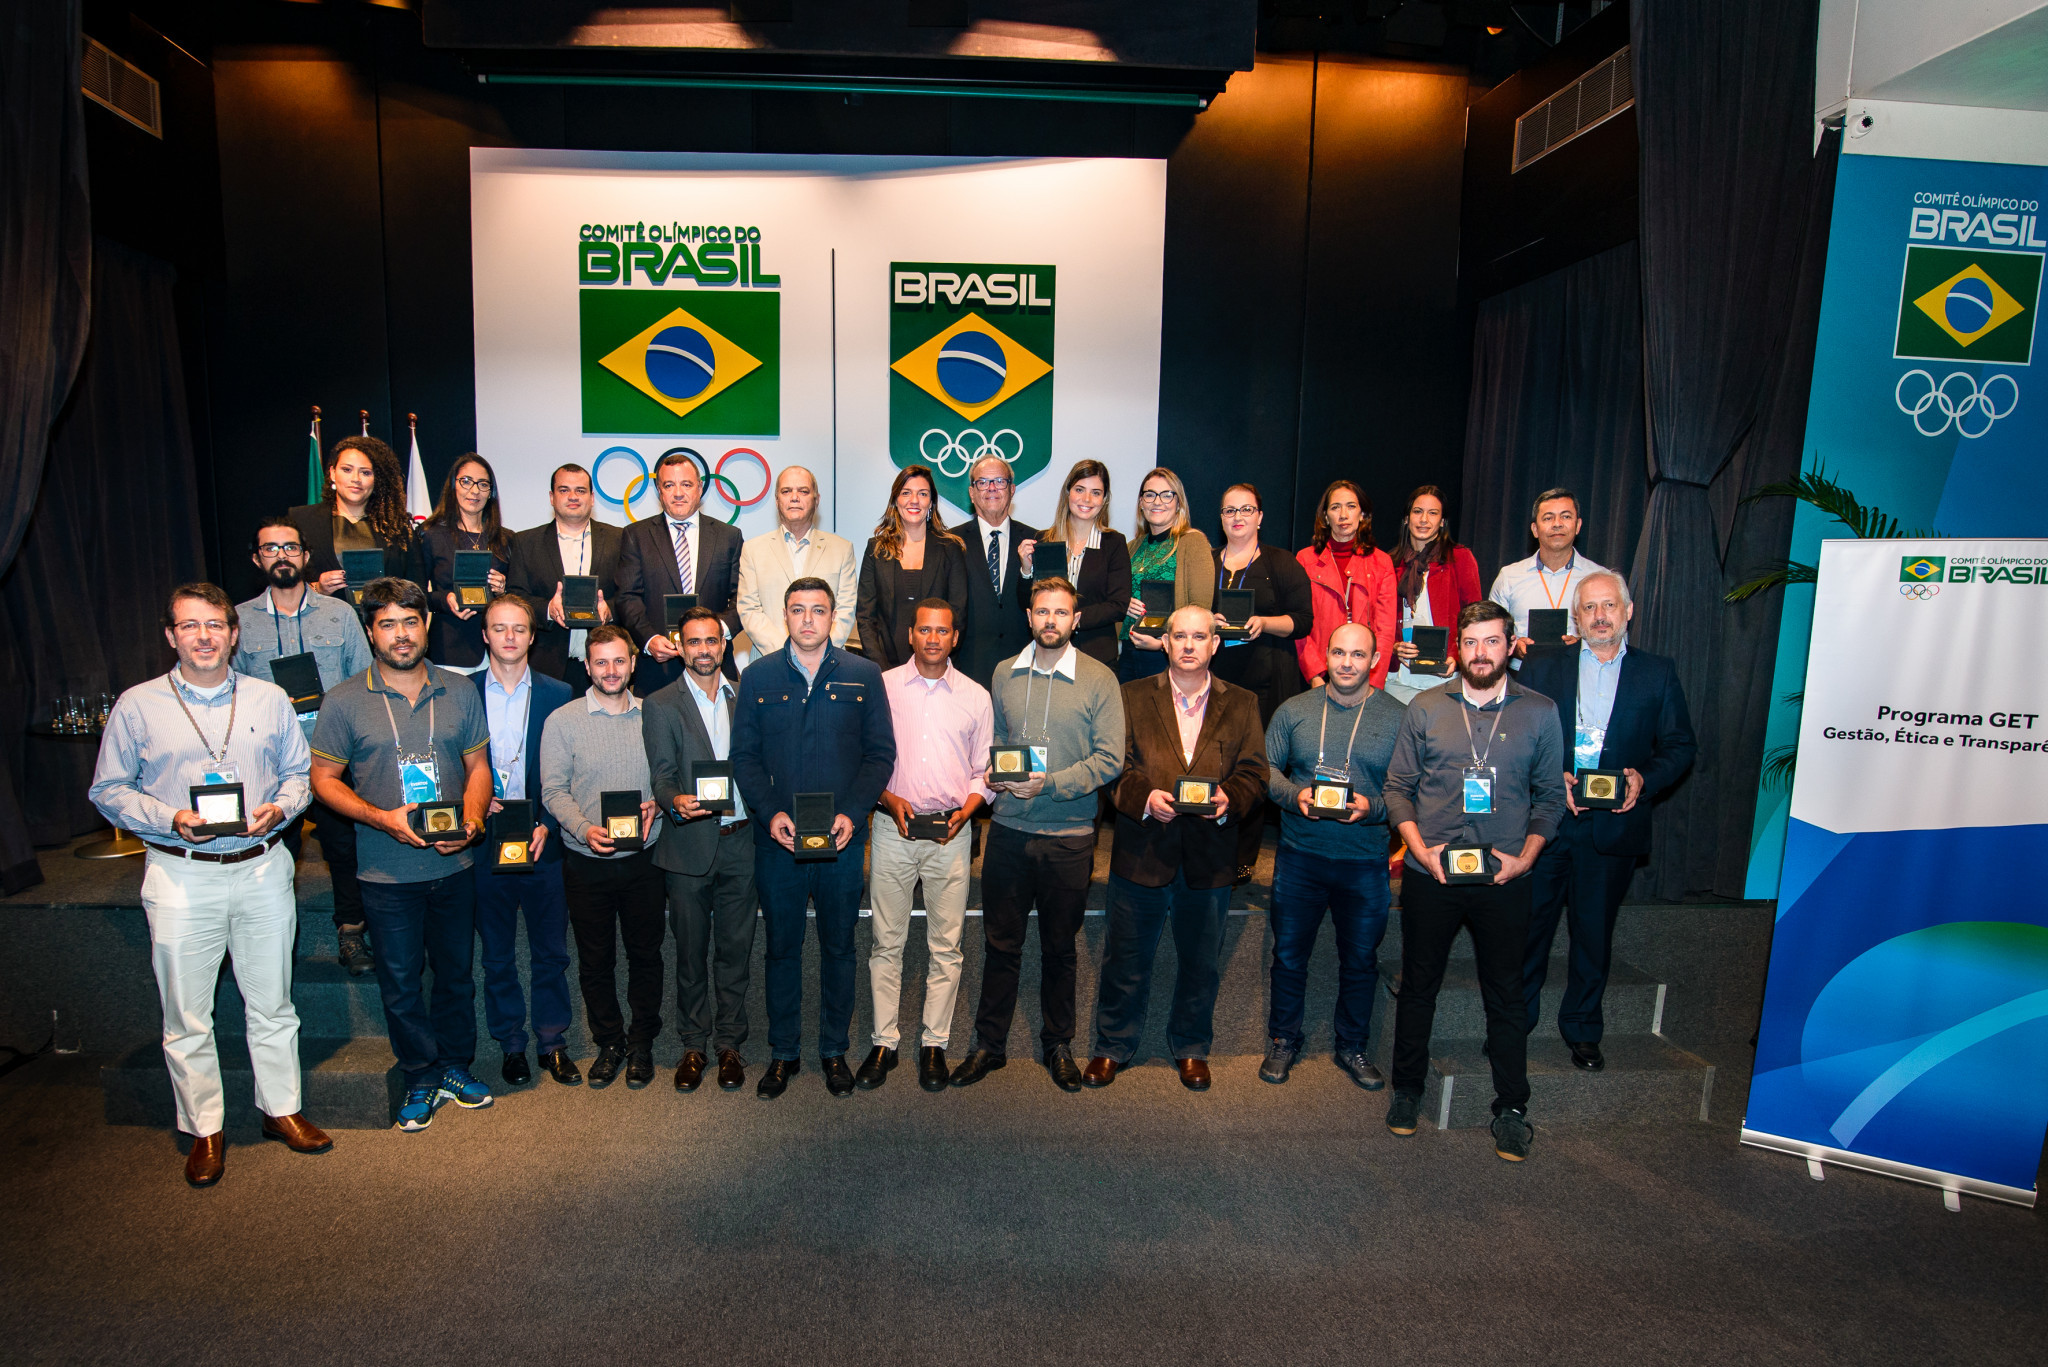 Brazilian Olympic Committee's good governance scheme joined by 32 sports